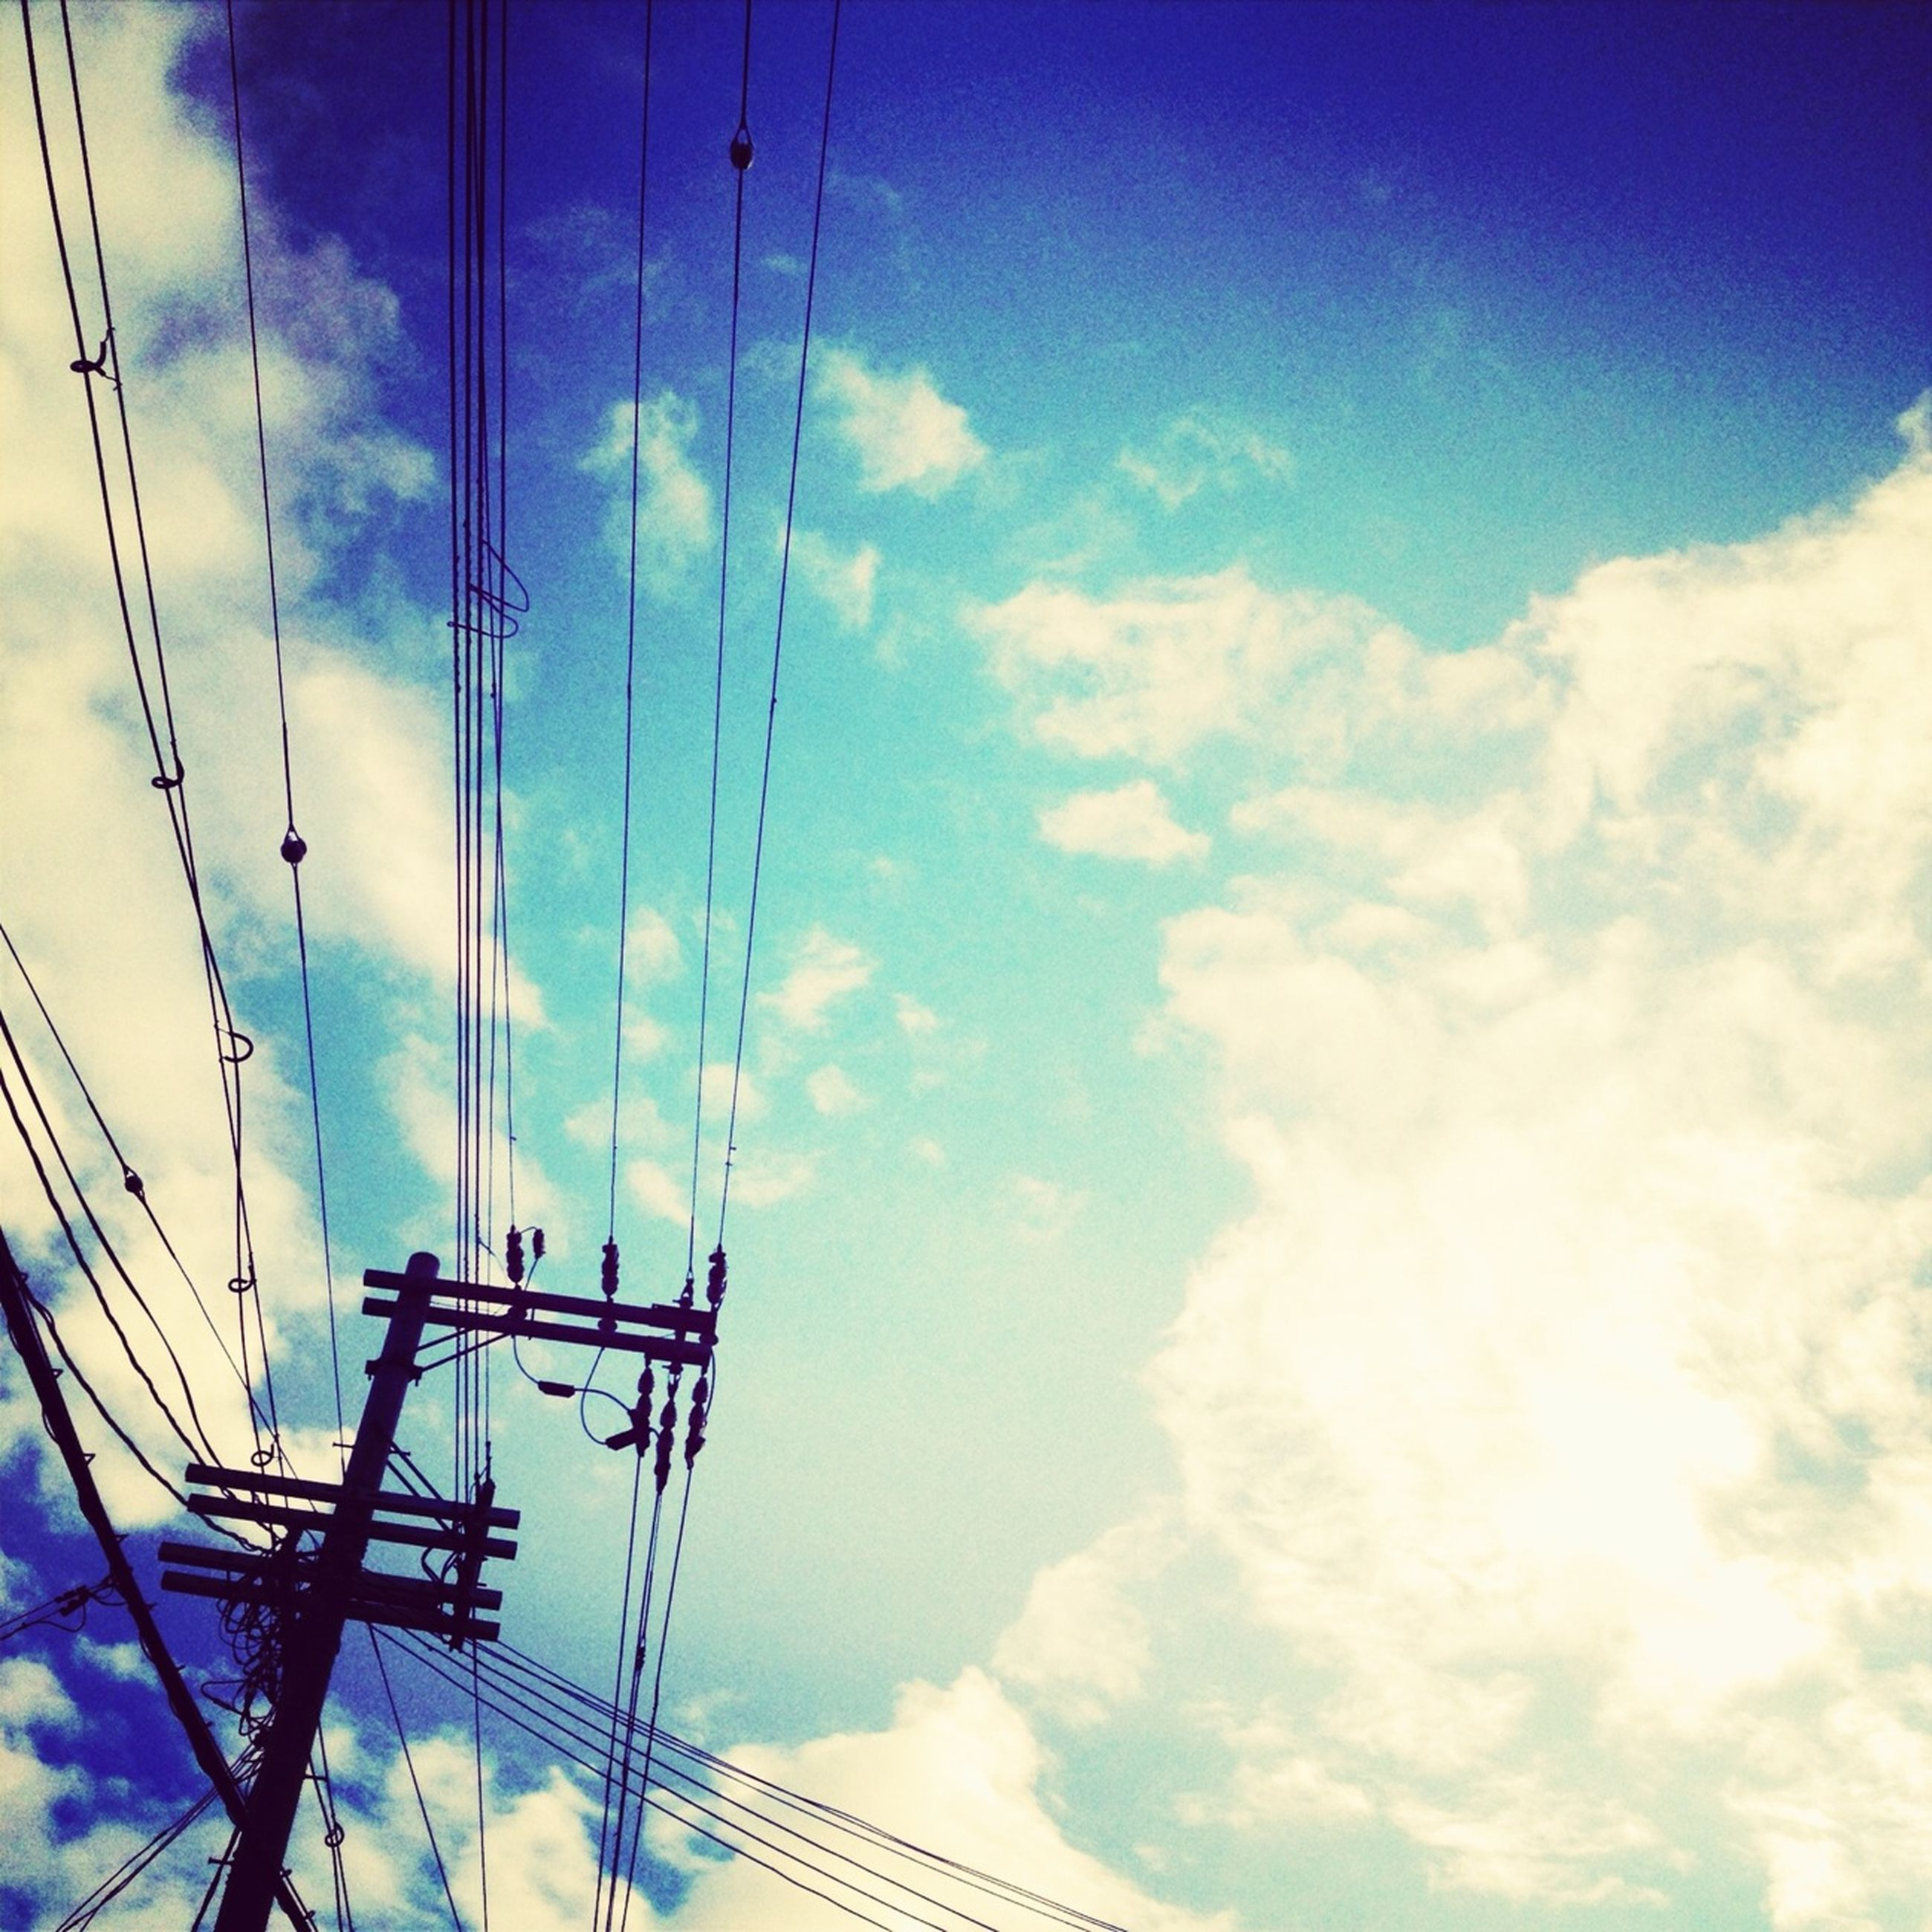 power line, low angle view, sky, electricity, electricity pylon, power supply, cable, connection, blue, cloud - sky, technology, fuel and power generation, cloud, cloudy, power cable, day, no people, outdoors, built structure, sunlight